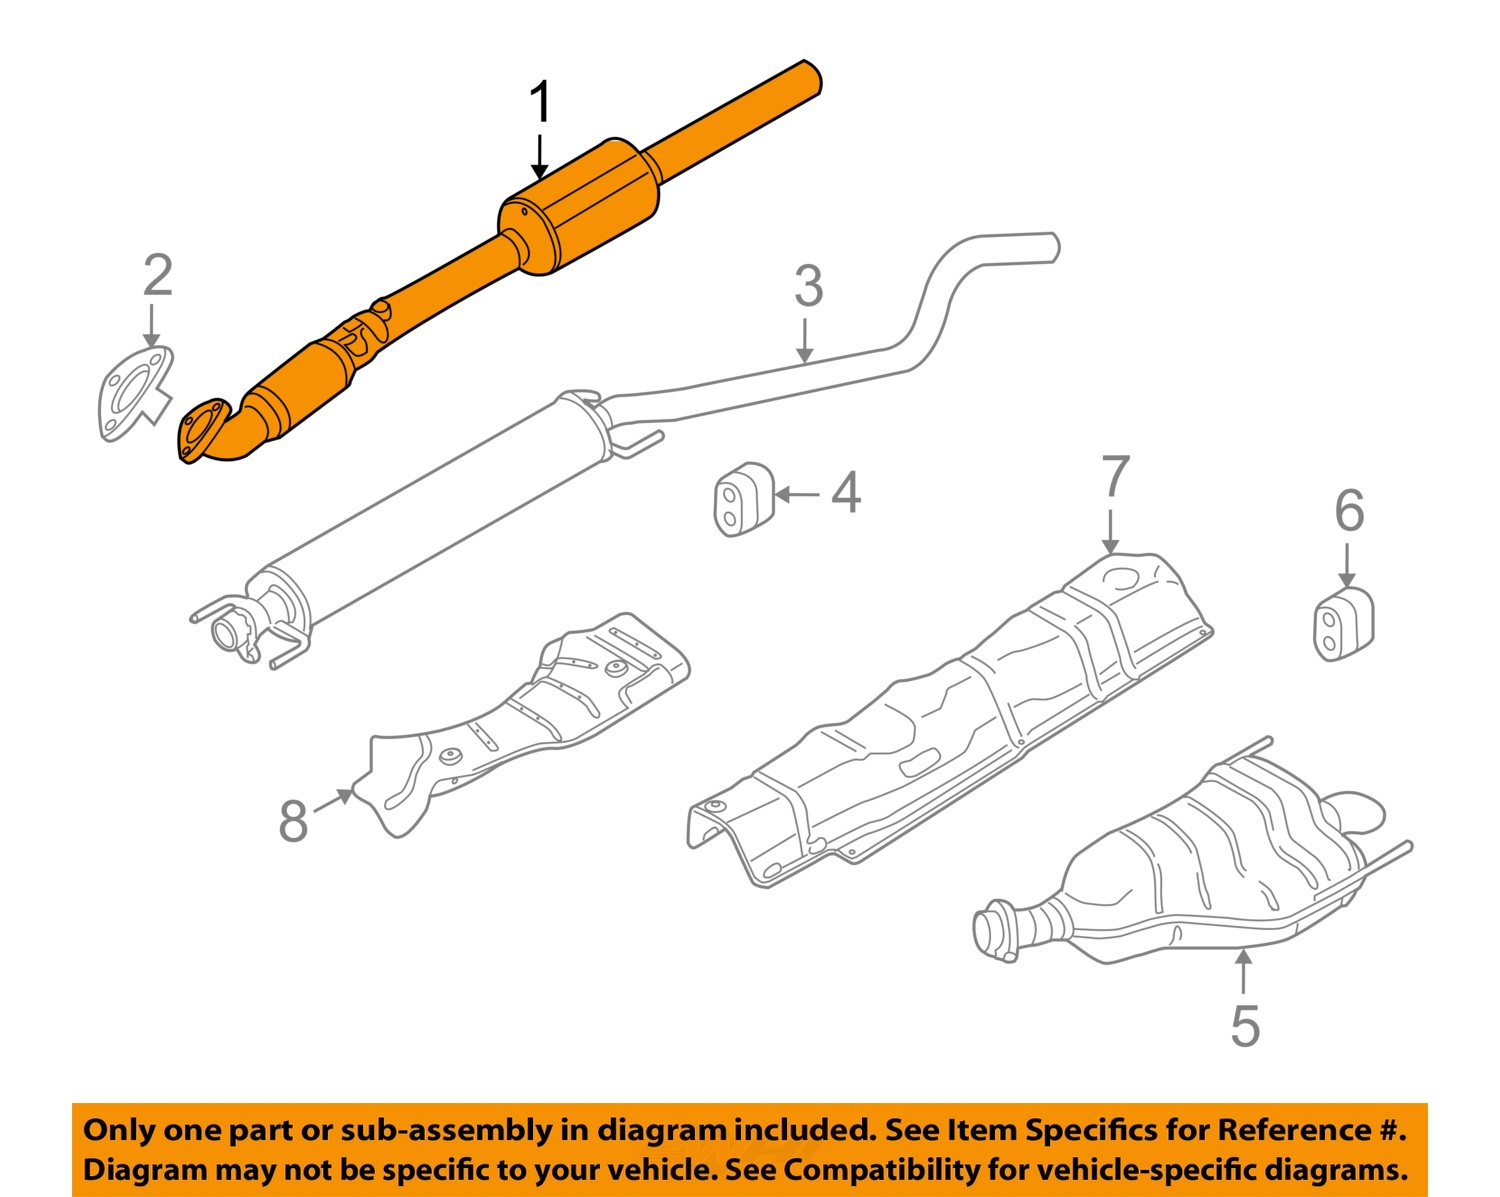 Saturn Astra Exhaust System Diagram Detailed Wiring Diagrams 2001 L300 Fuel Auto Electrical U2022 2003 Vue